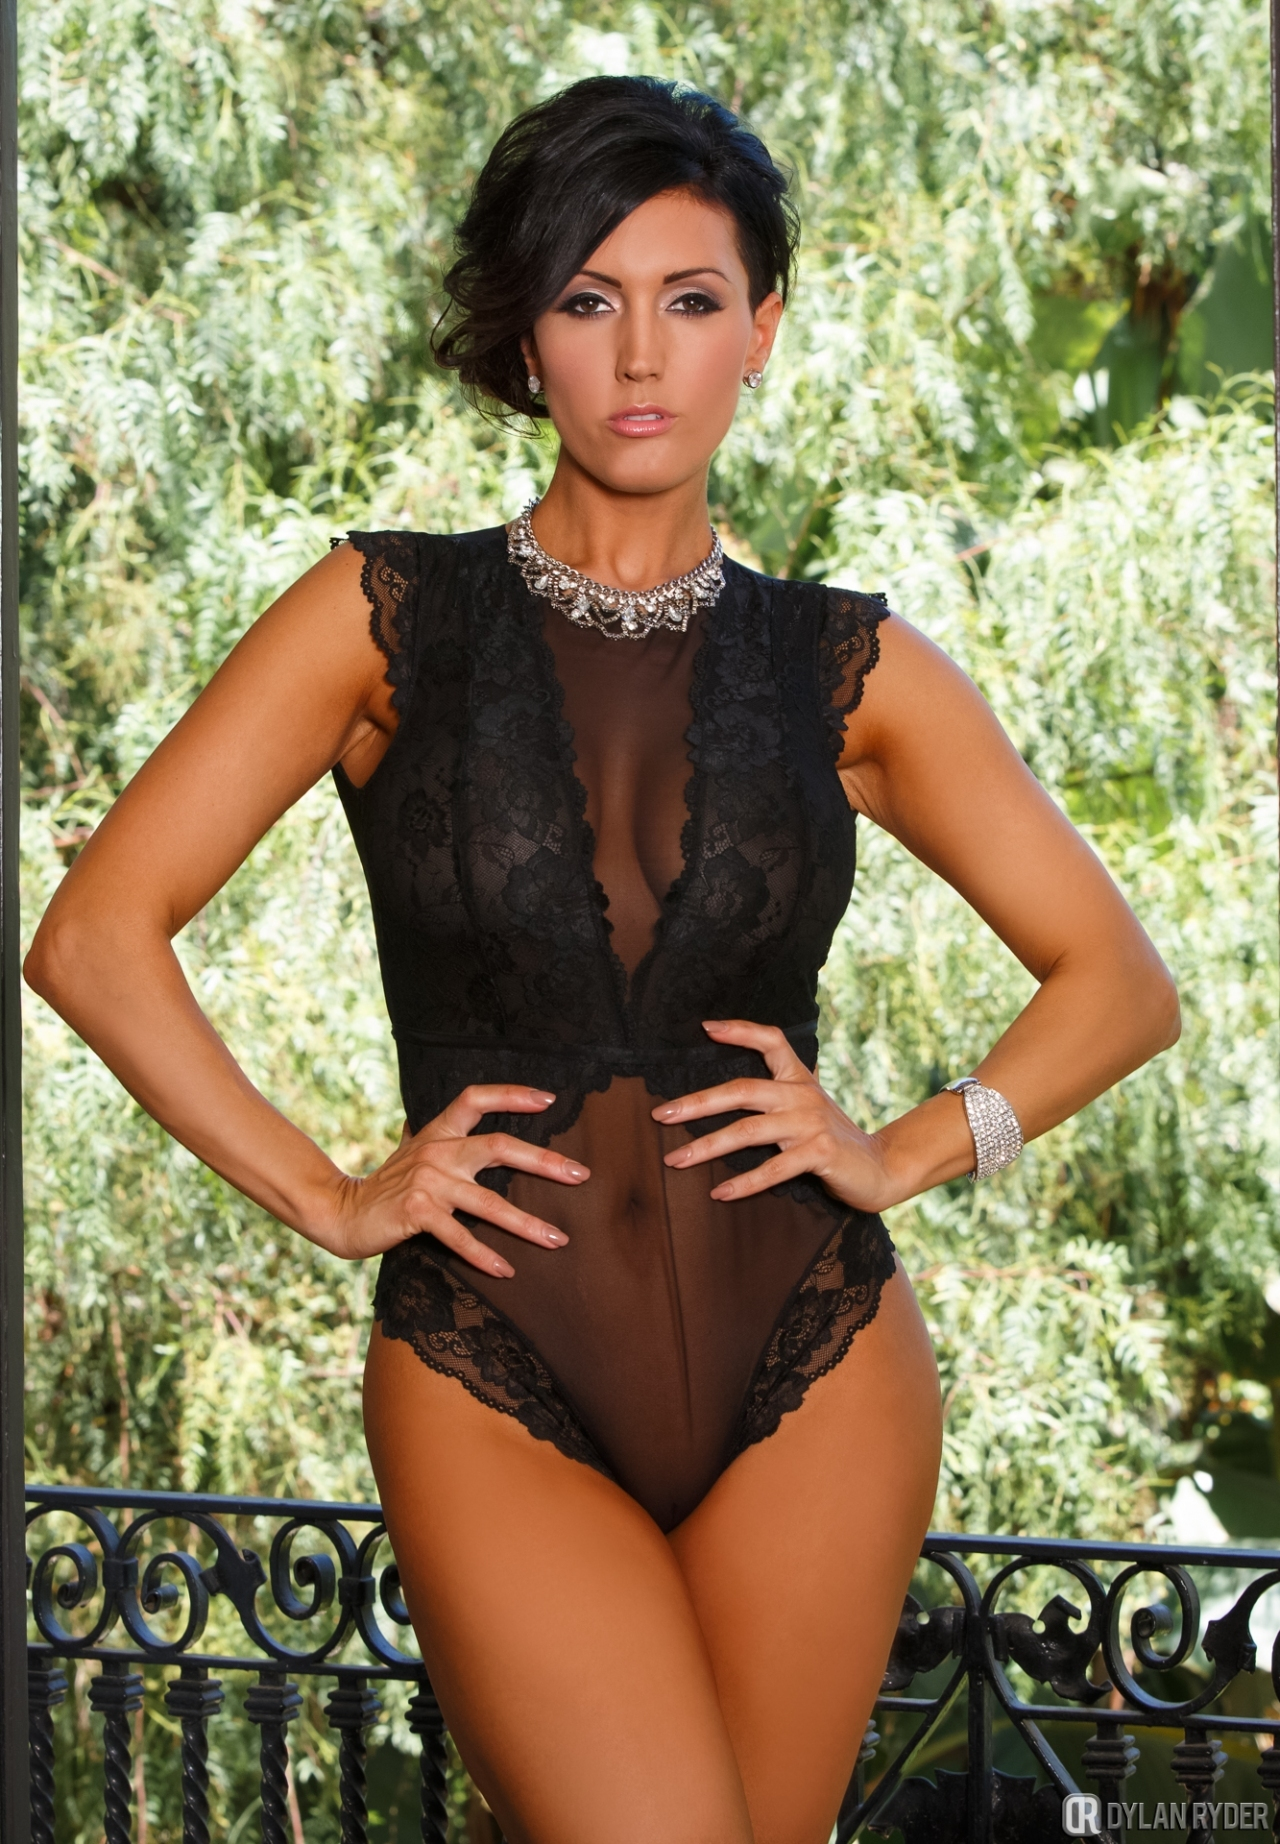 Dylan Ryder Big Tits in Black Lacy Lingerie